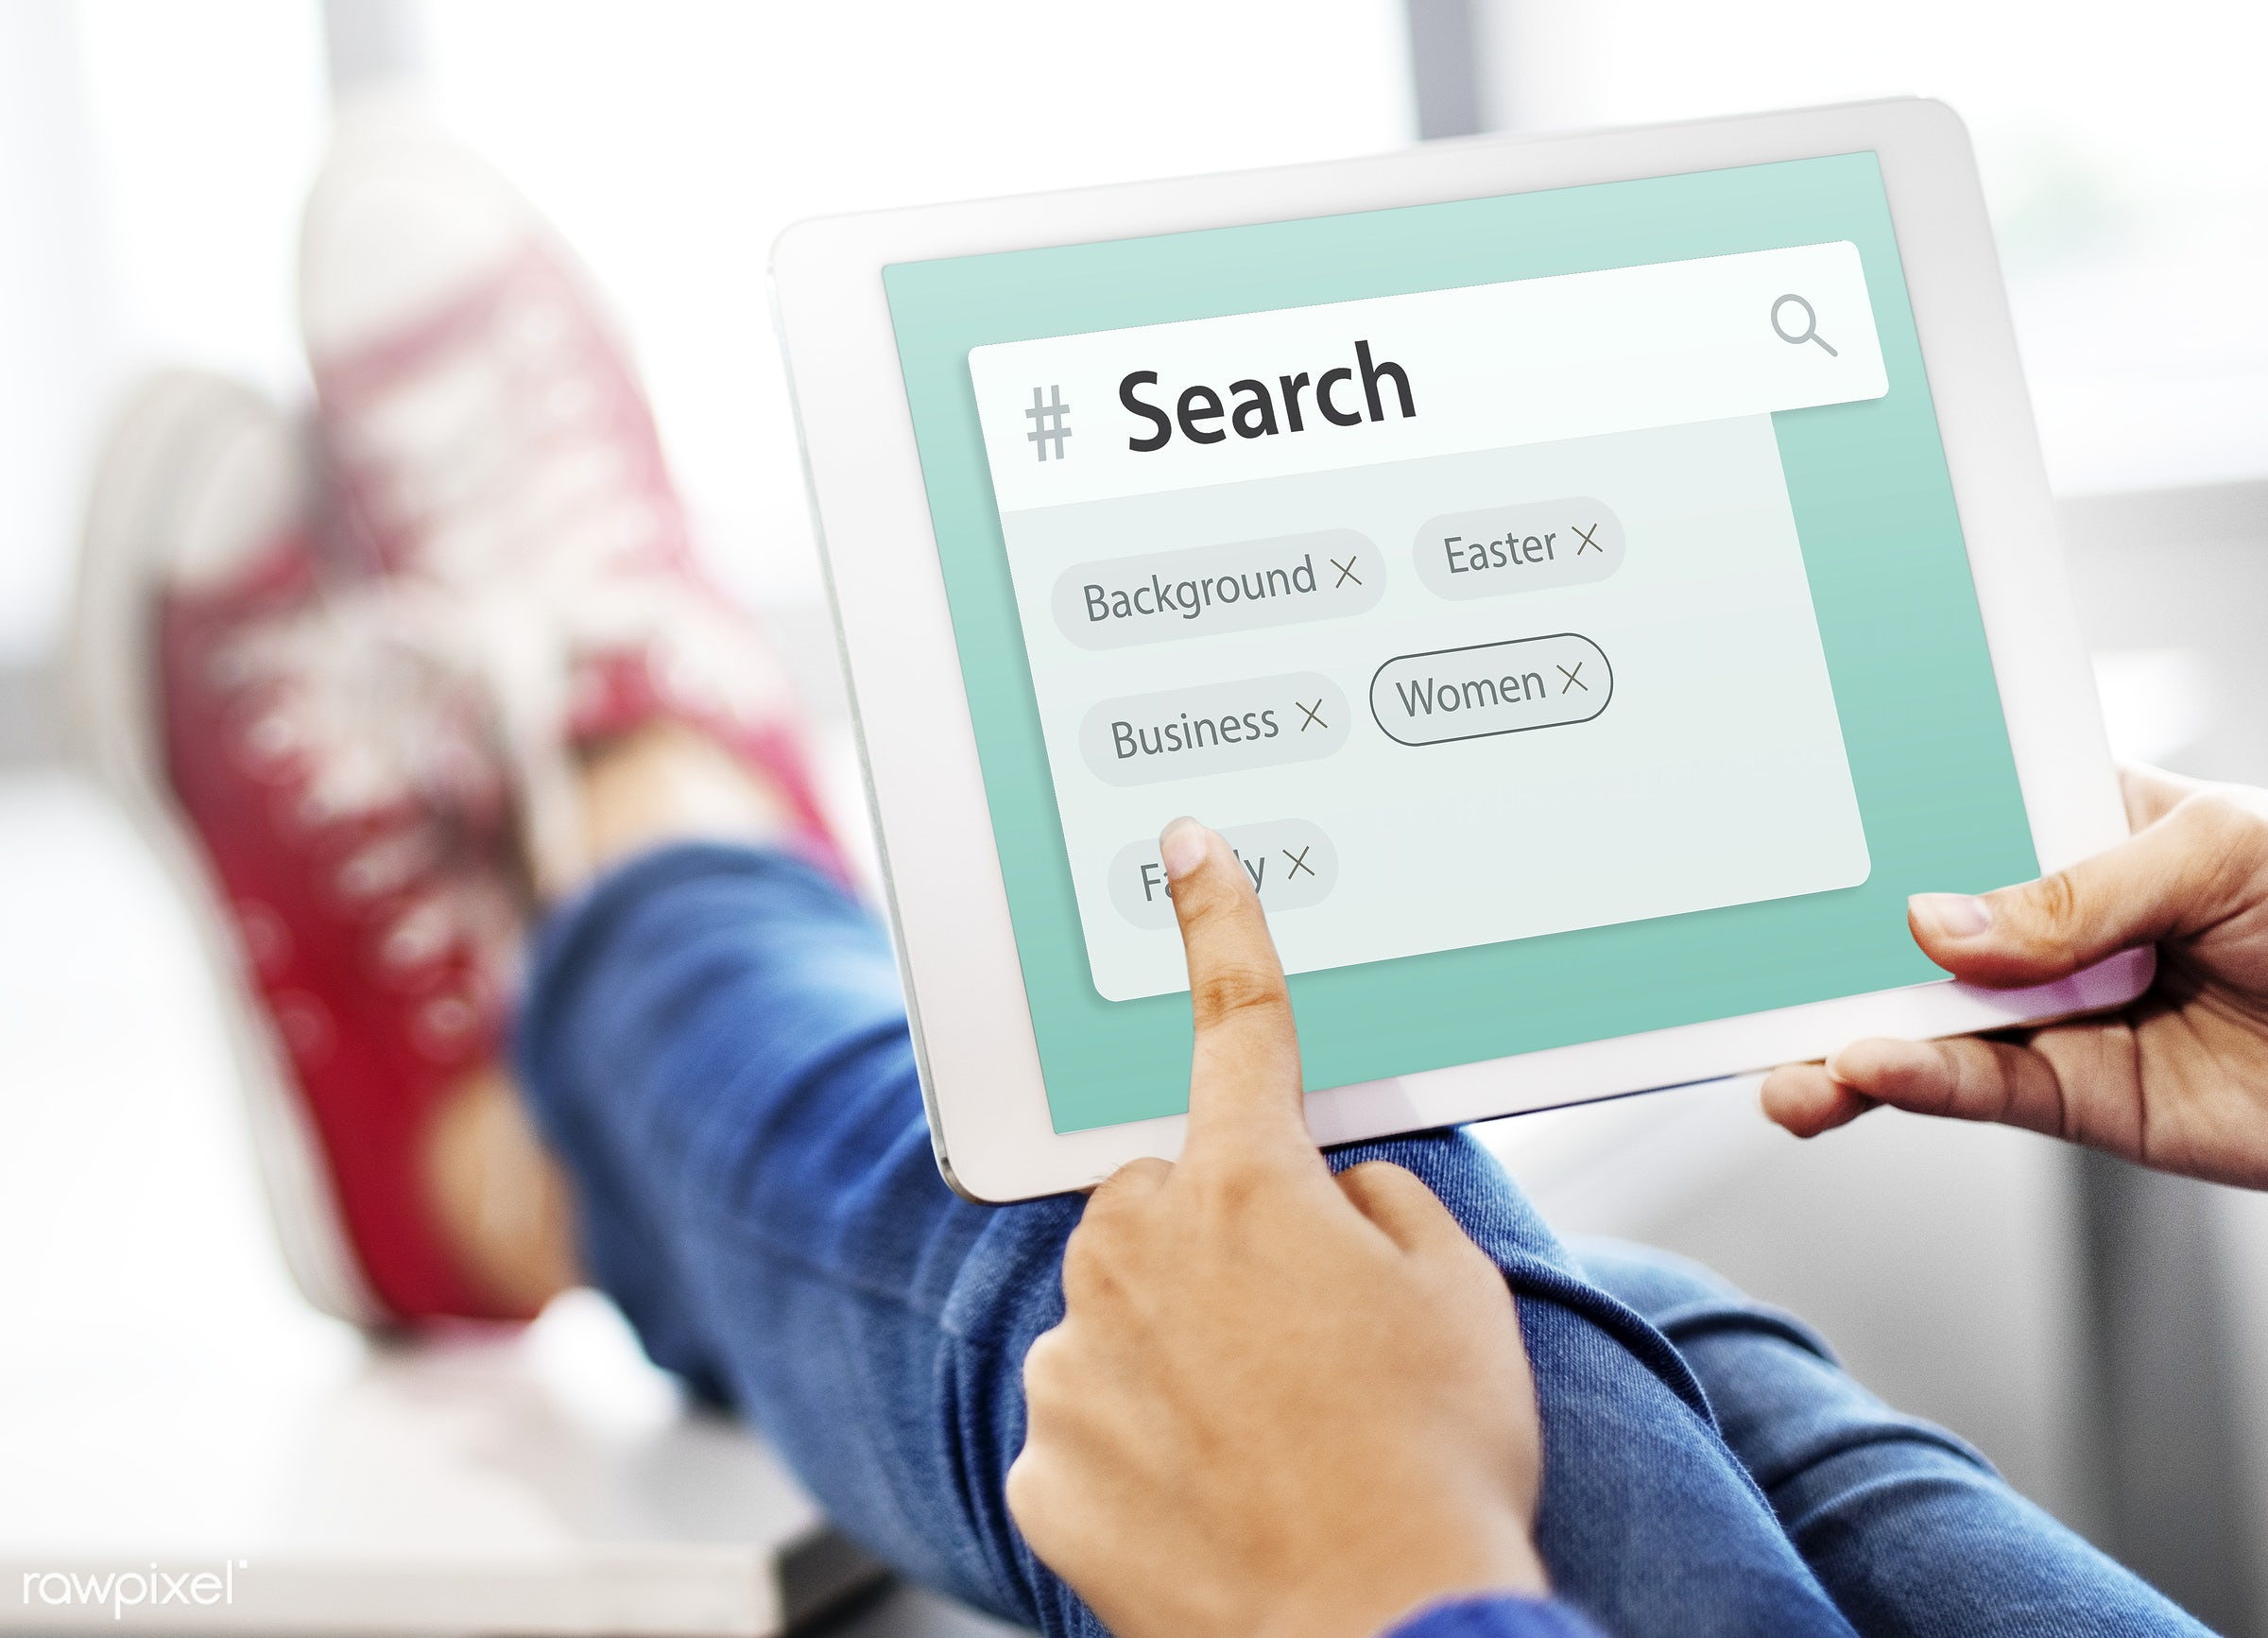 seo, keyword, browse, browsing, casual, center, concept, data, digital tablet, engine, find, hands, help, info, information...